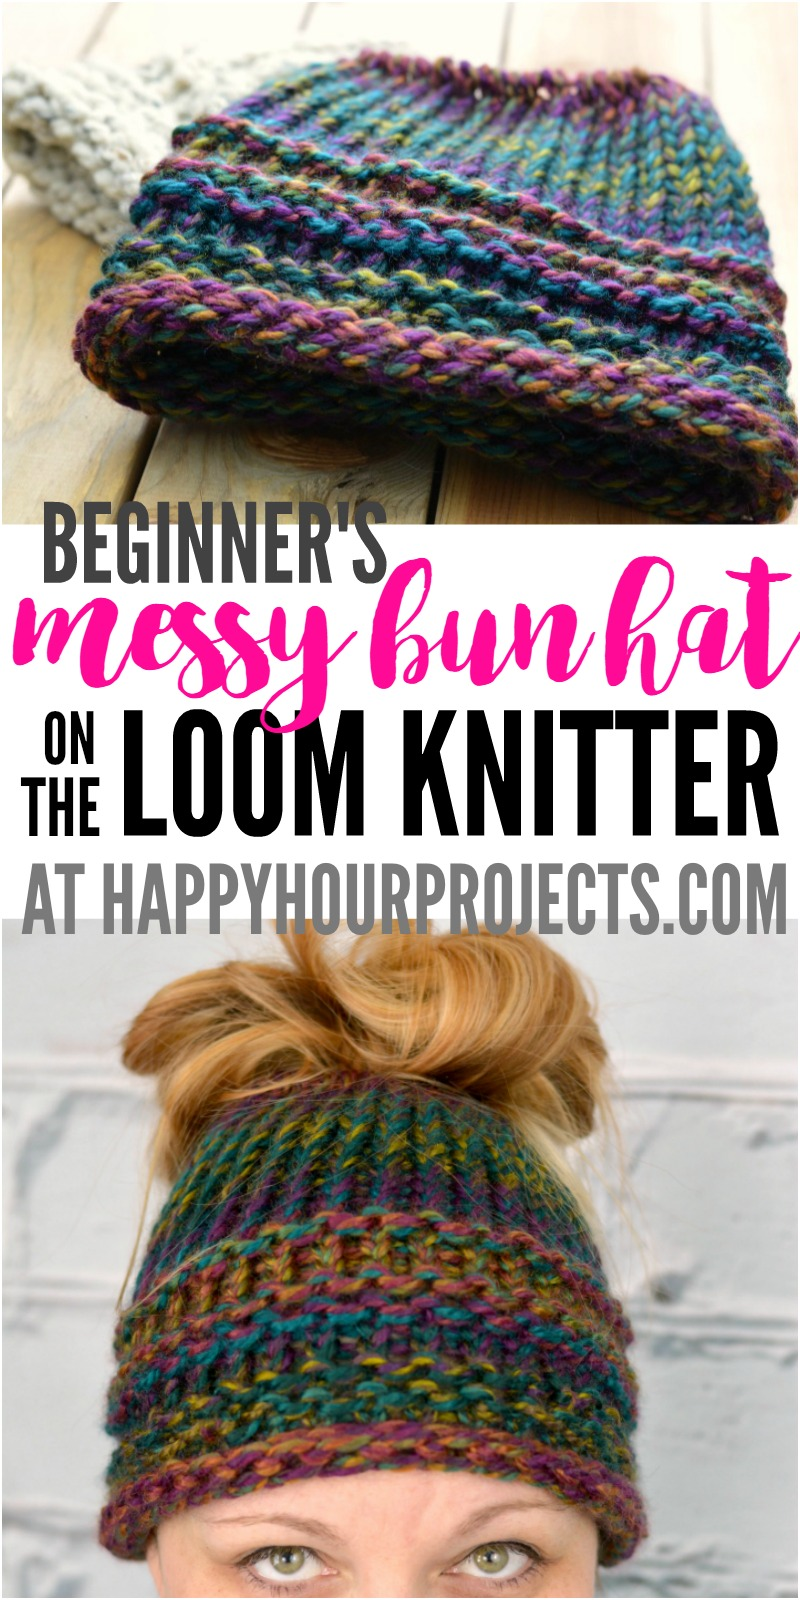 Diy Messy Bun Hat Loom Knitter Pattern For Beginners Happy Hour